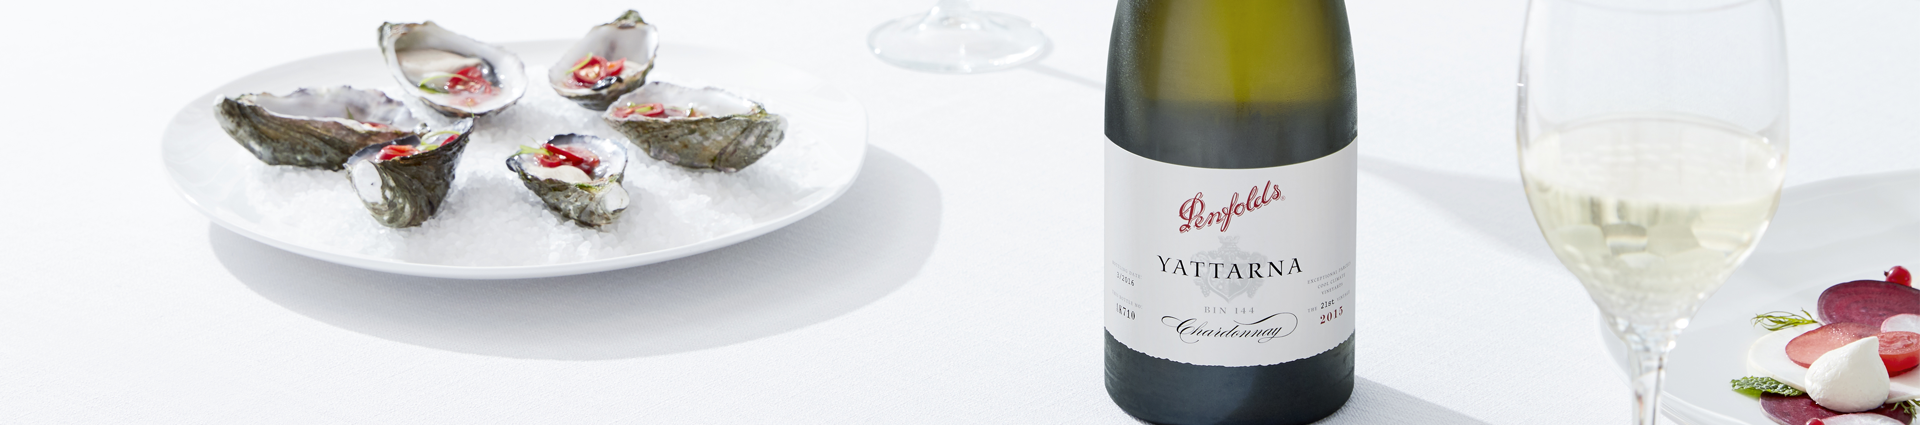 Bottle of Yattarna Chardonnay centred on a white tablecloth.  A glass to the right and a plate of oysters to the left.